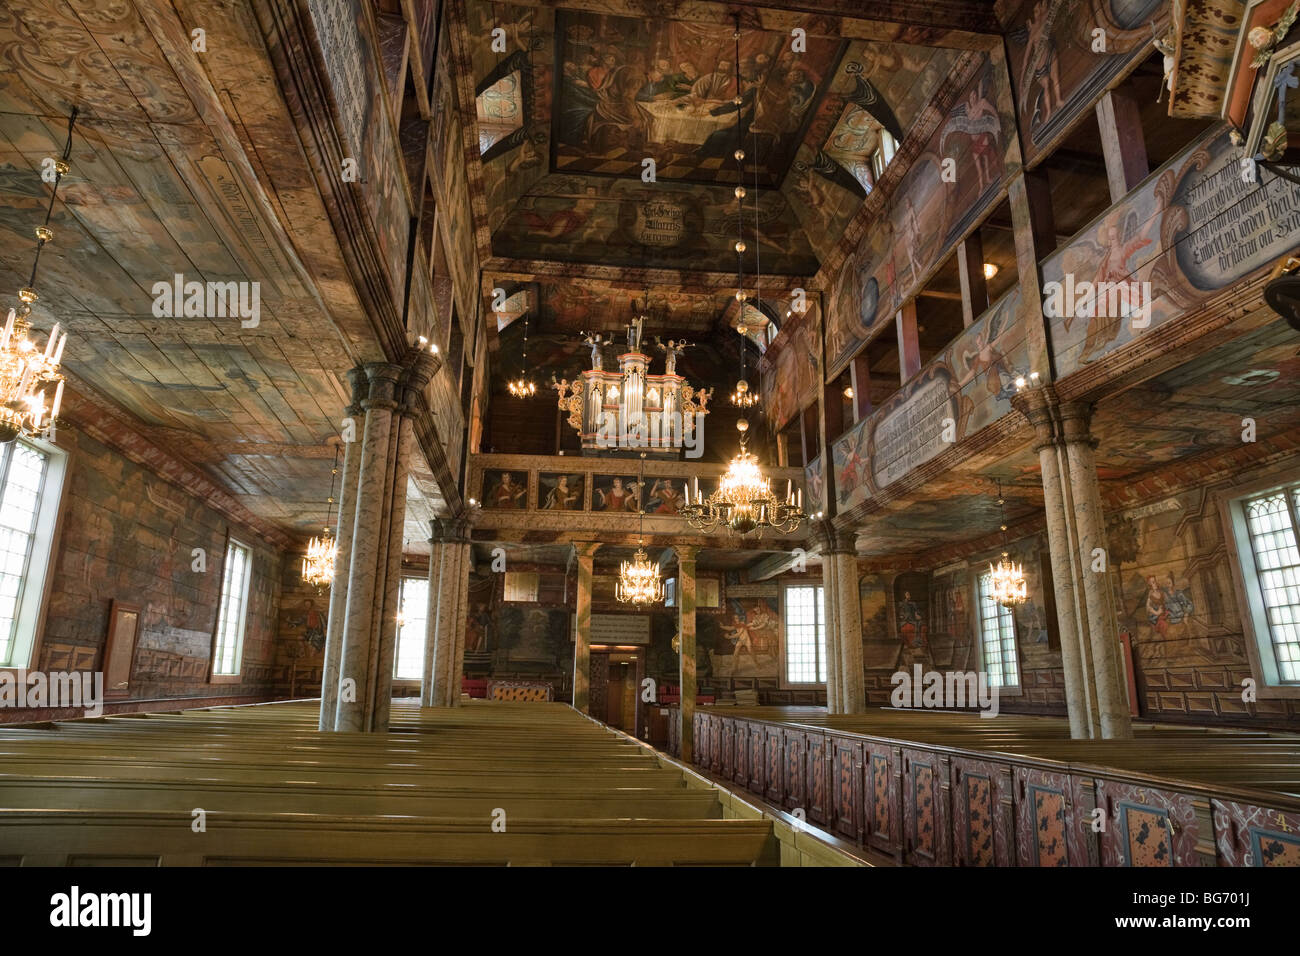 Interior Of An Old Wooden Church Habo In Sweden The